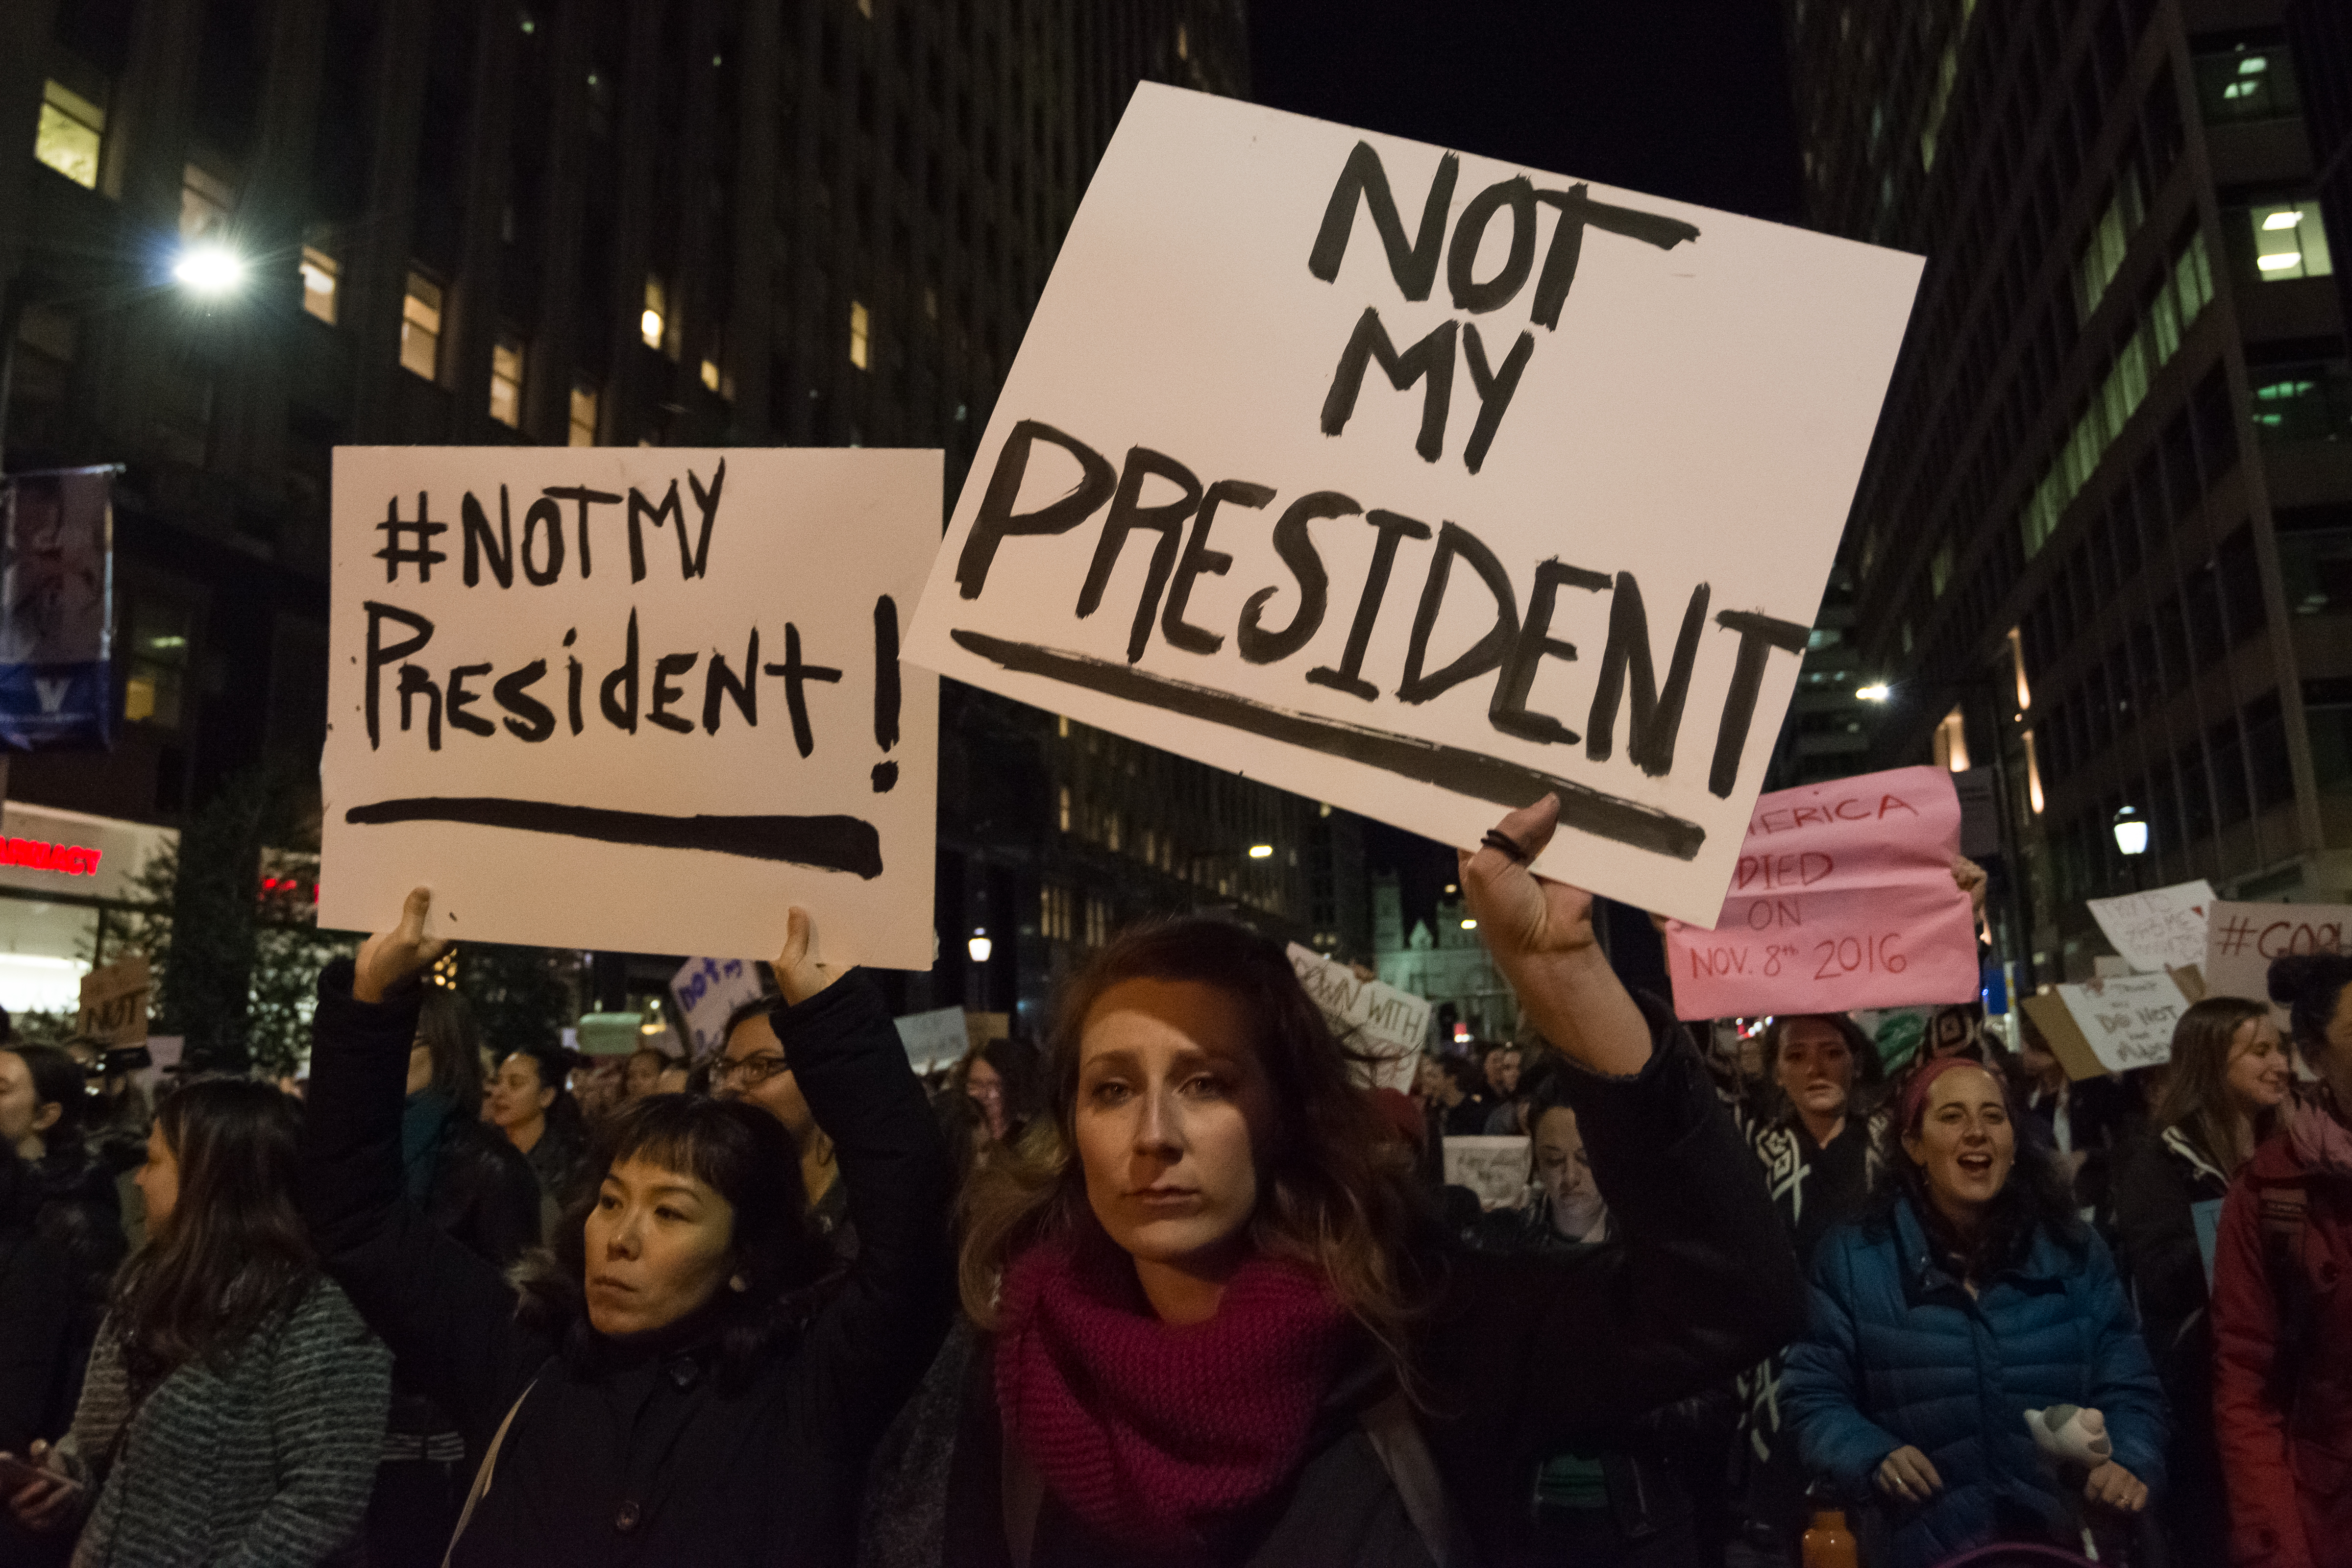 Demonstrators in downtown Philadelphia decry the political agenda of President-elect Donald J. Trump.